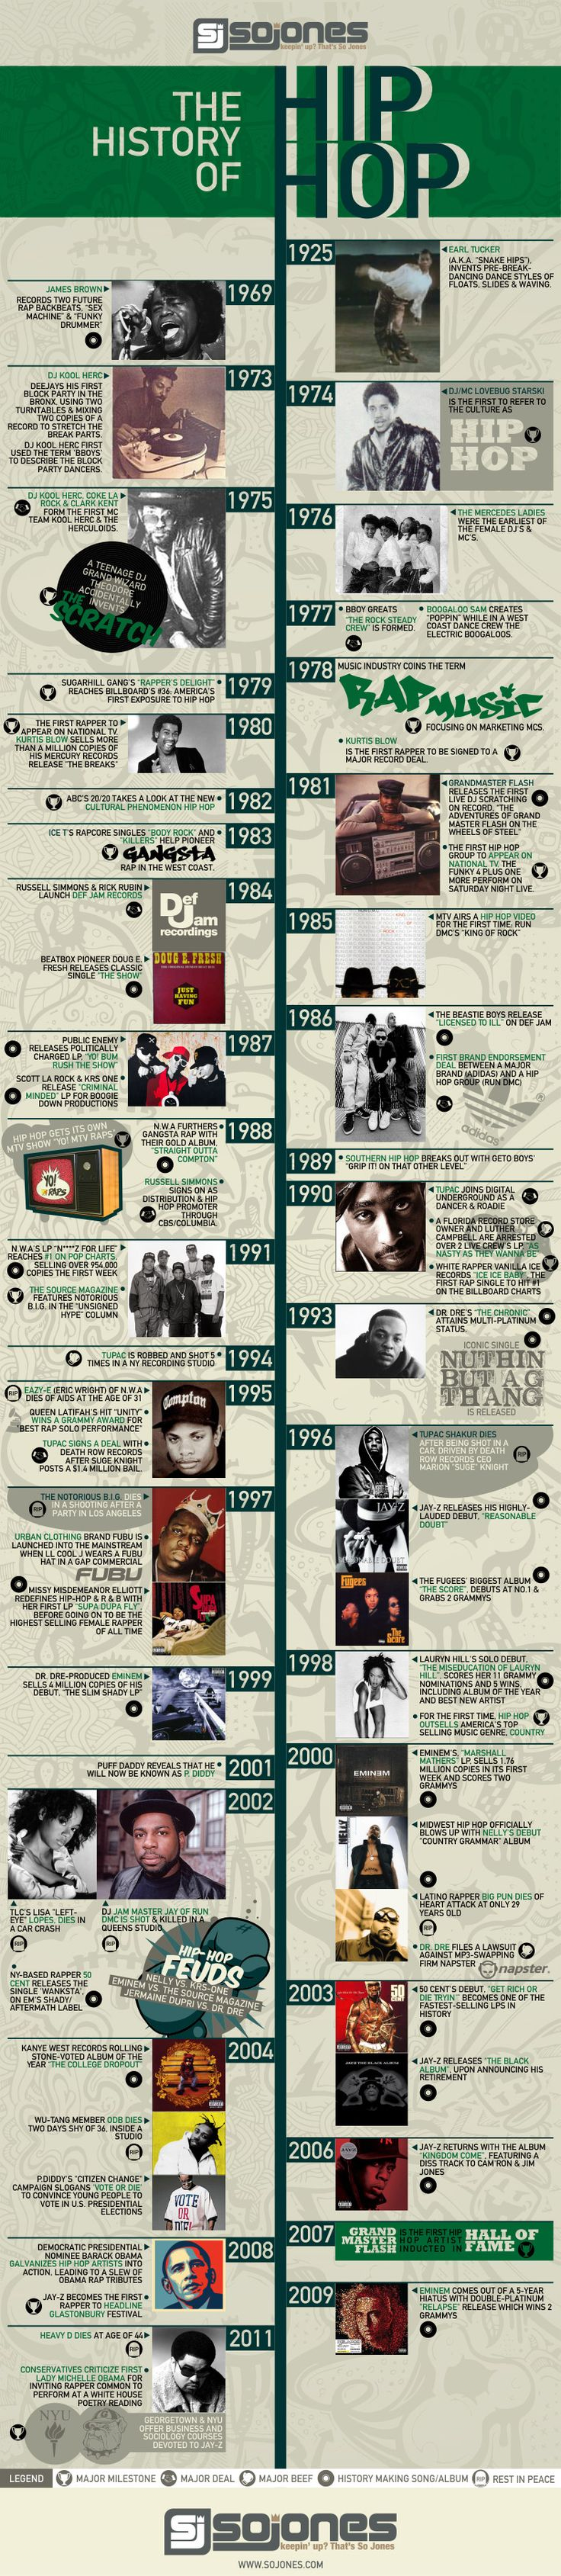 History of Hip Hop